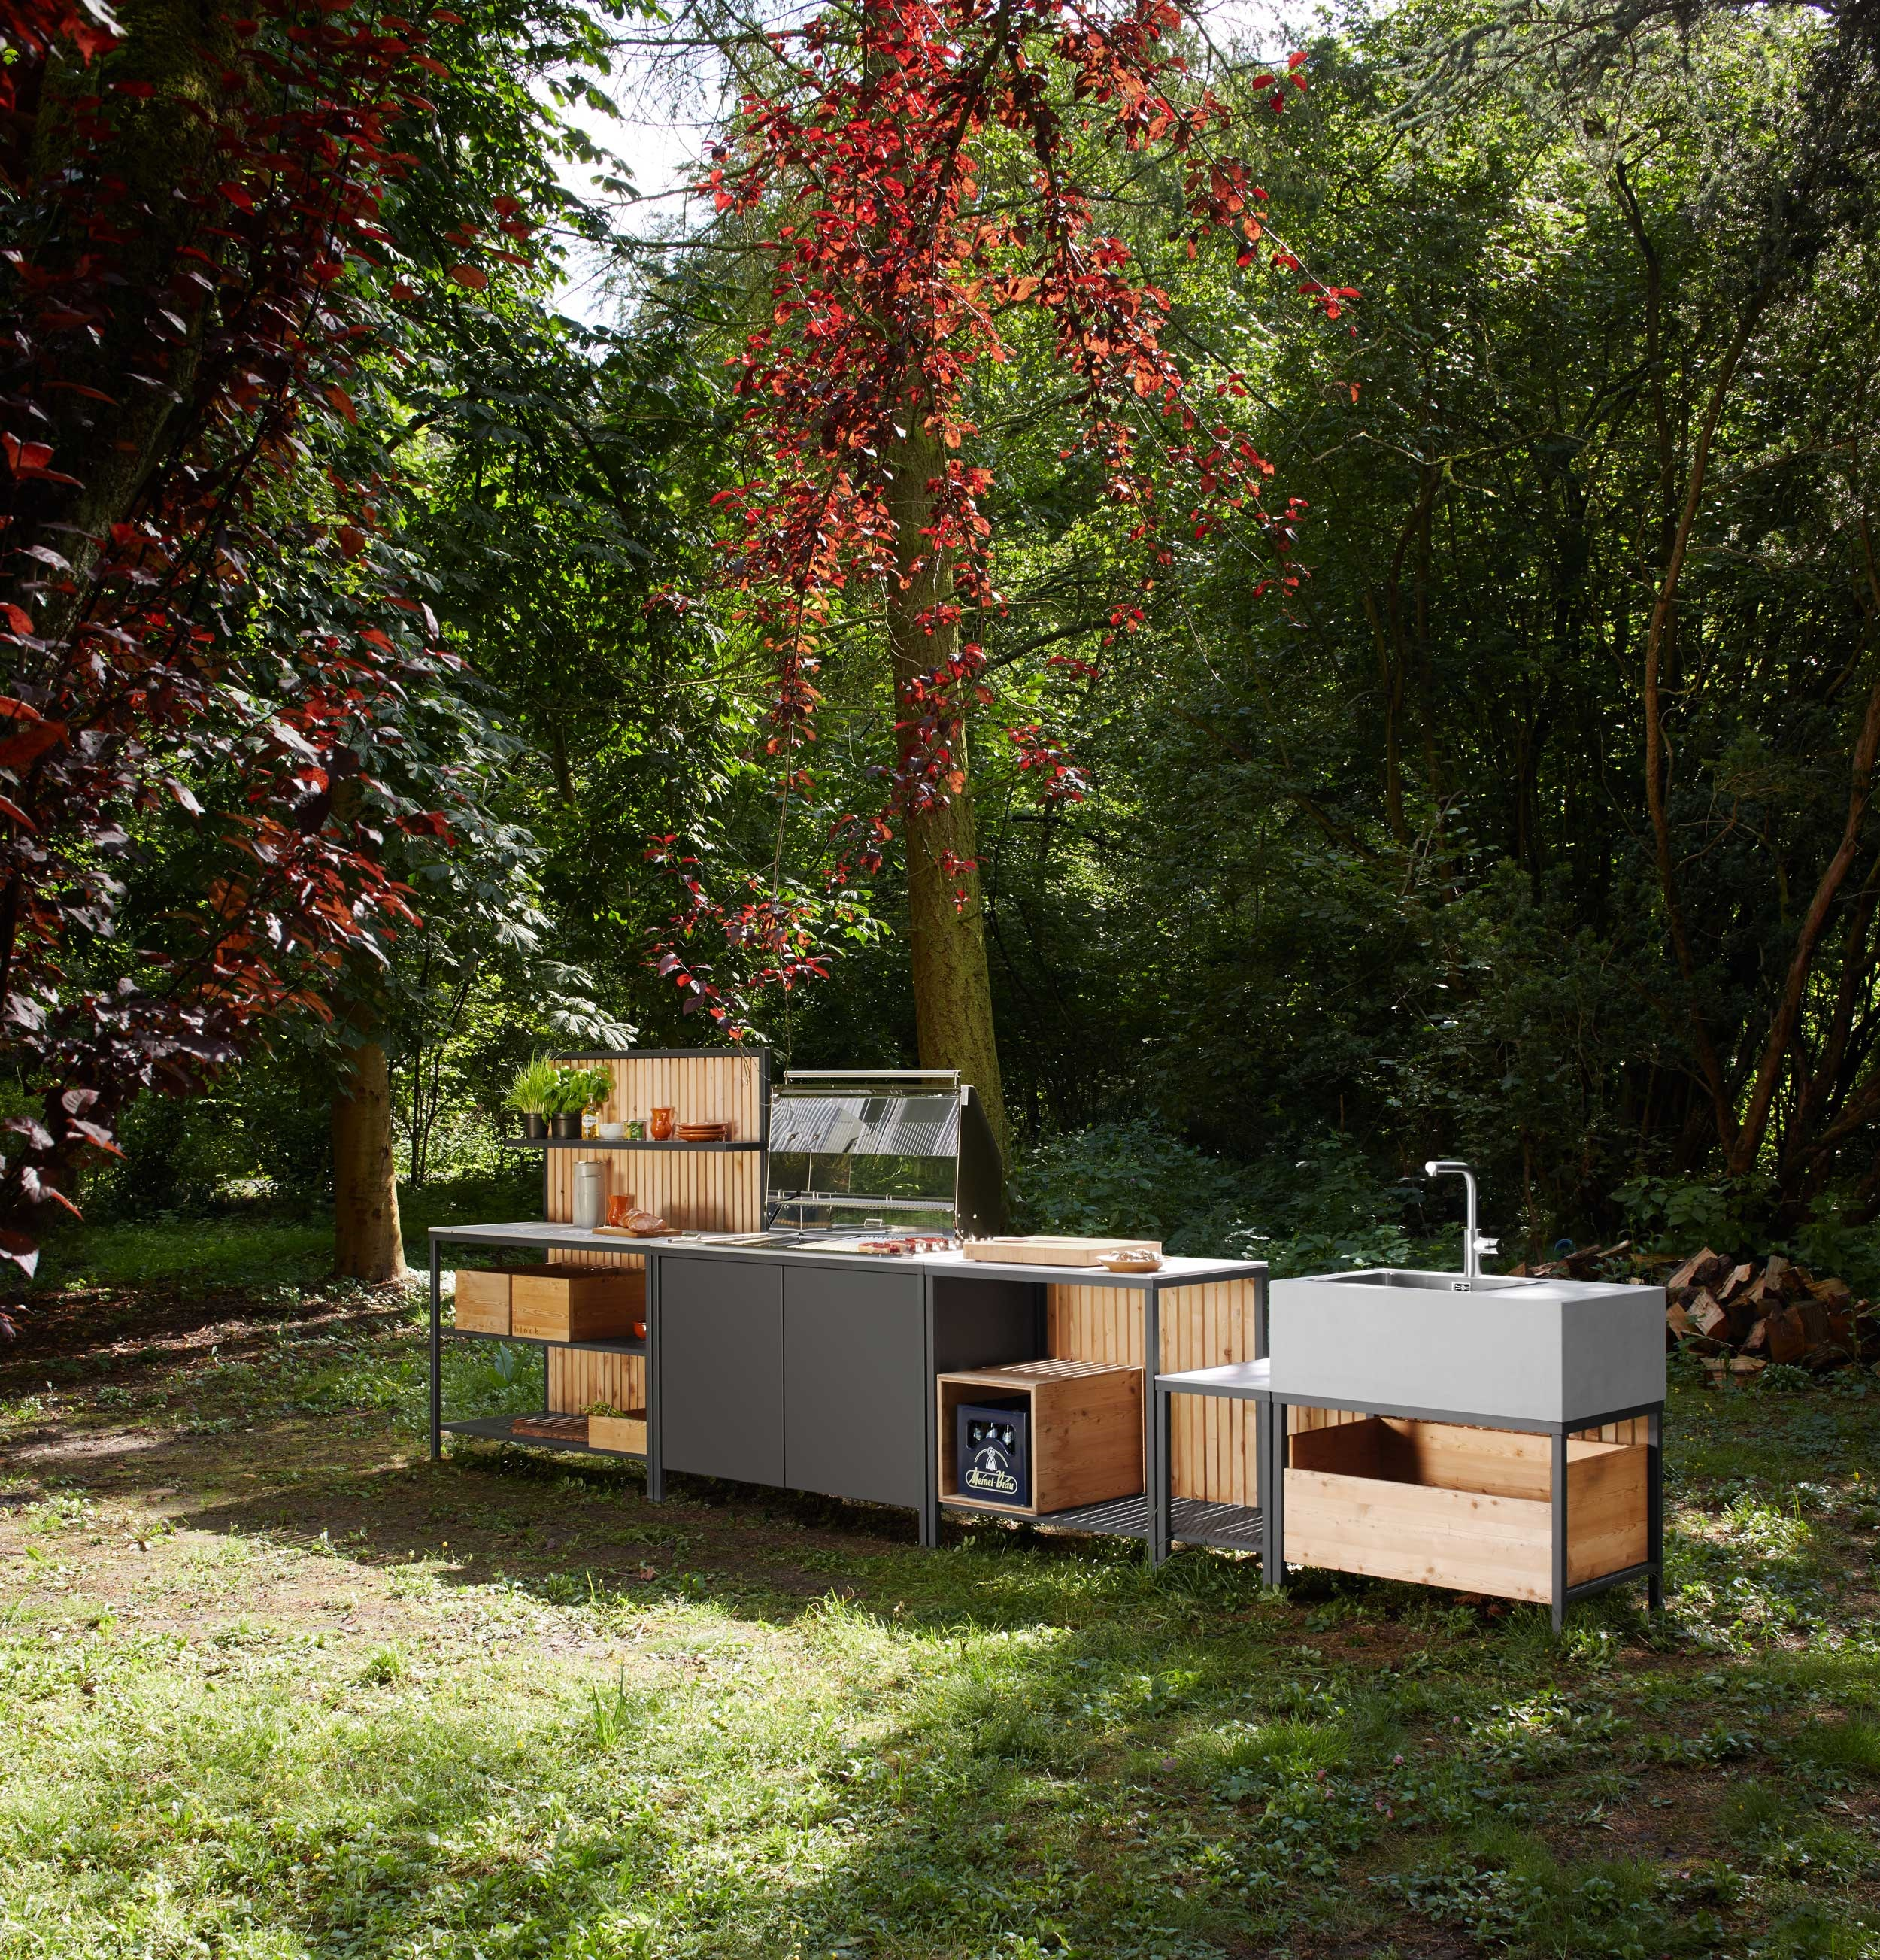 outdoor kitchen block in backyard forest